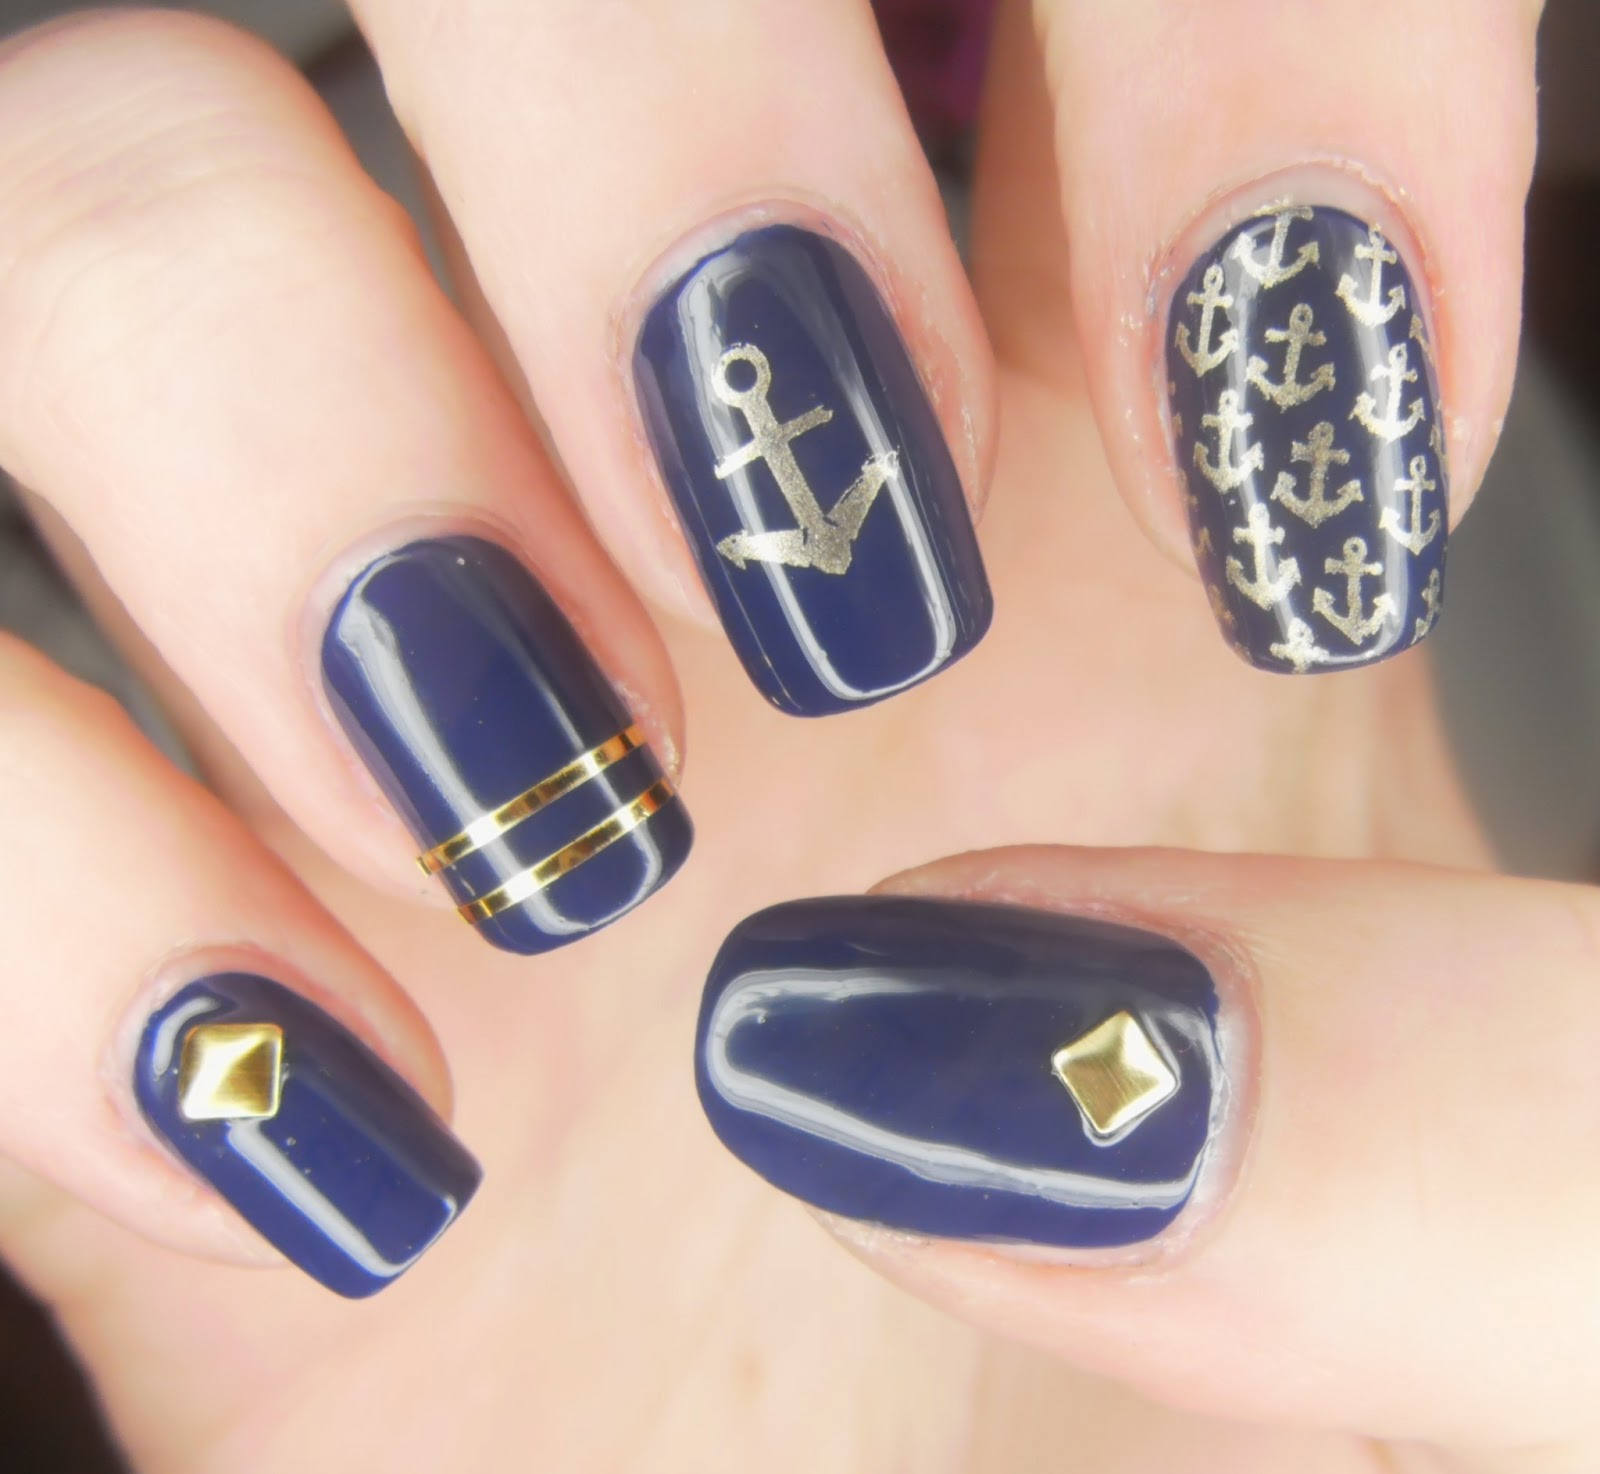 Nail Art On Navy Blue Nails: SpecialGirl Nails: Invogue In The Navy Swatch And Nail Art